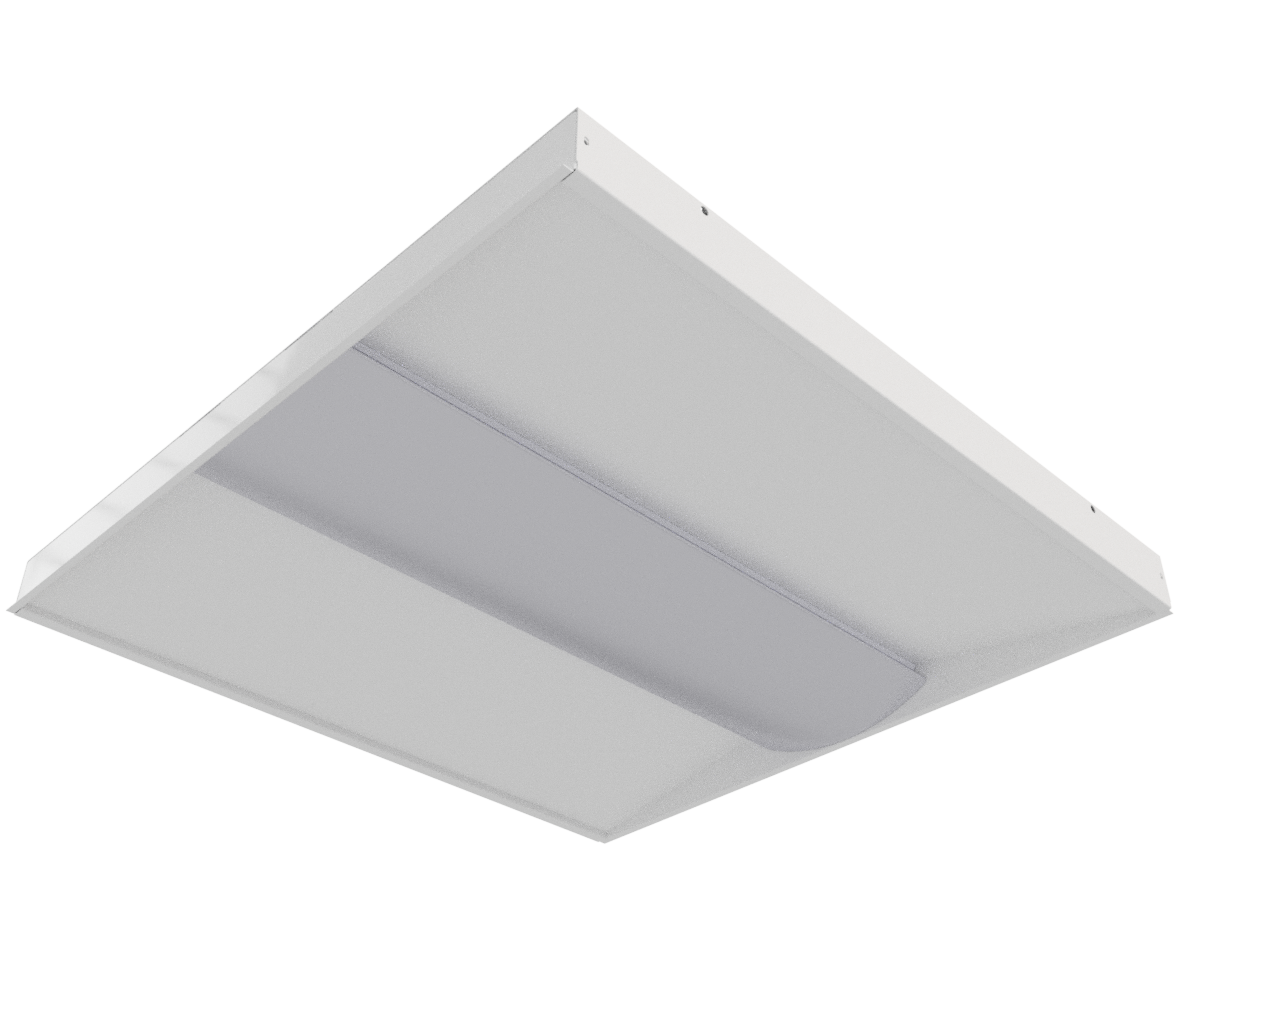 SC2134R SERIES PMC Lighting